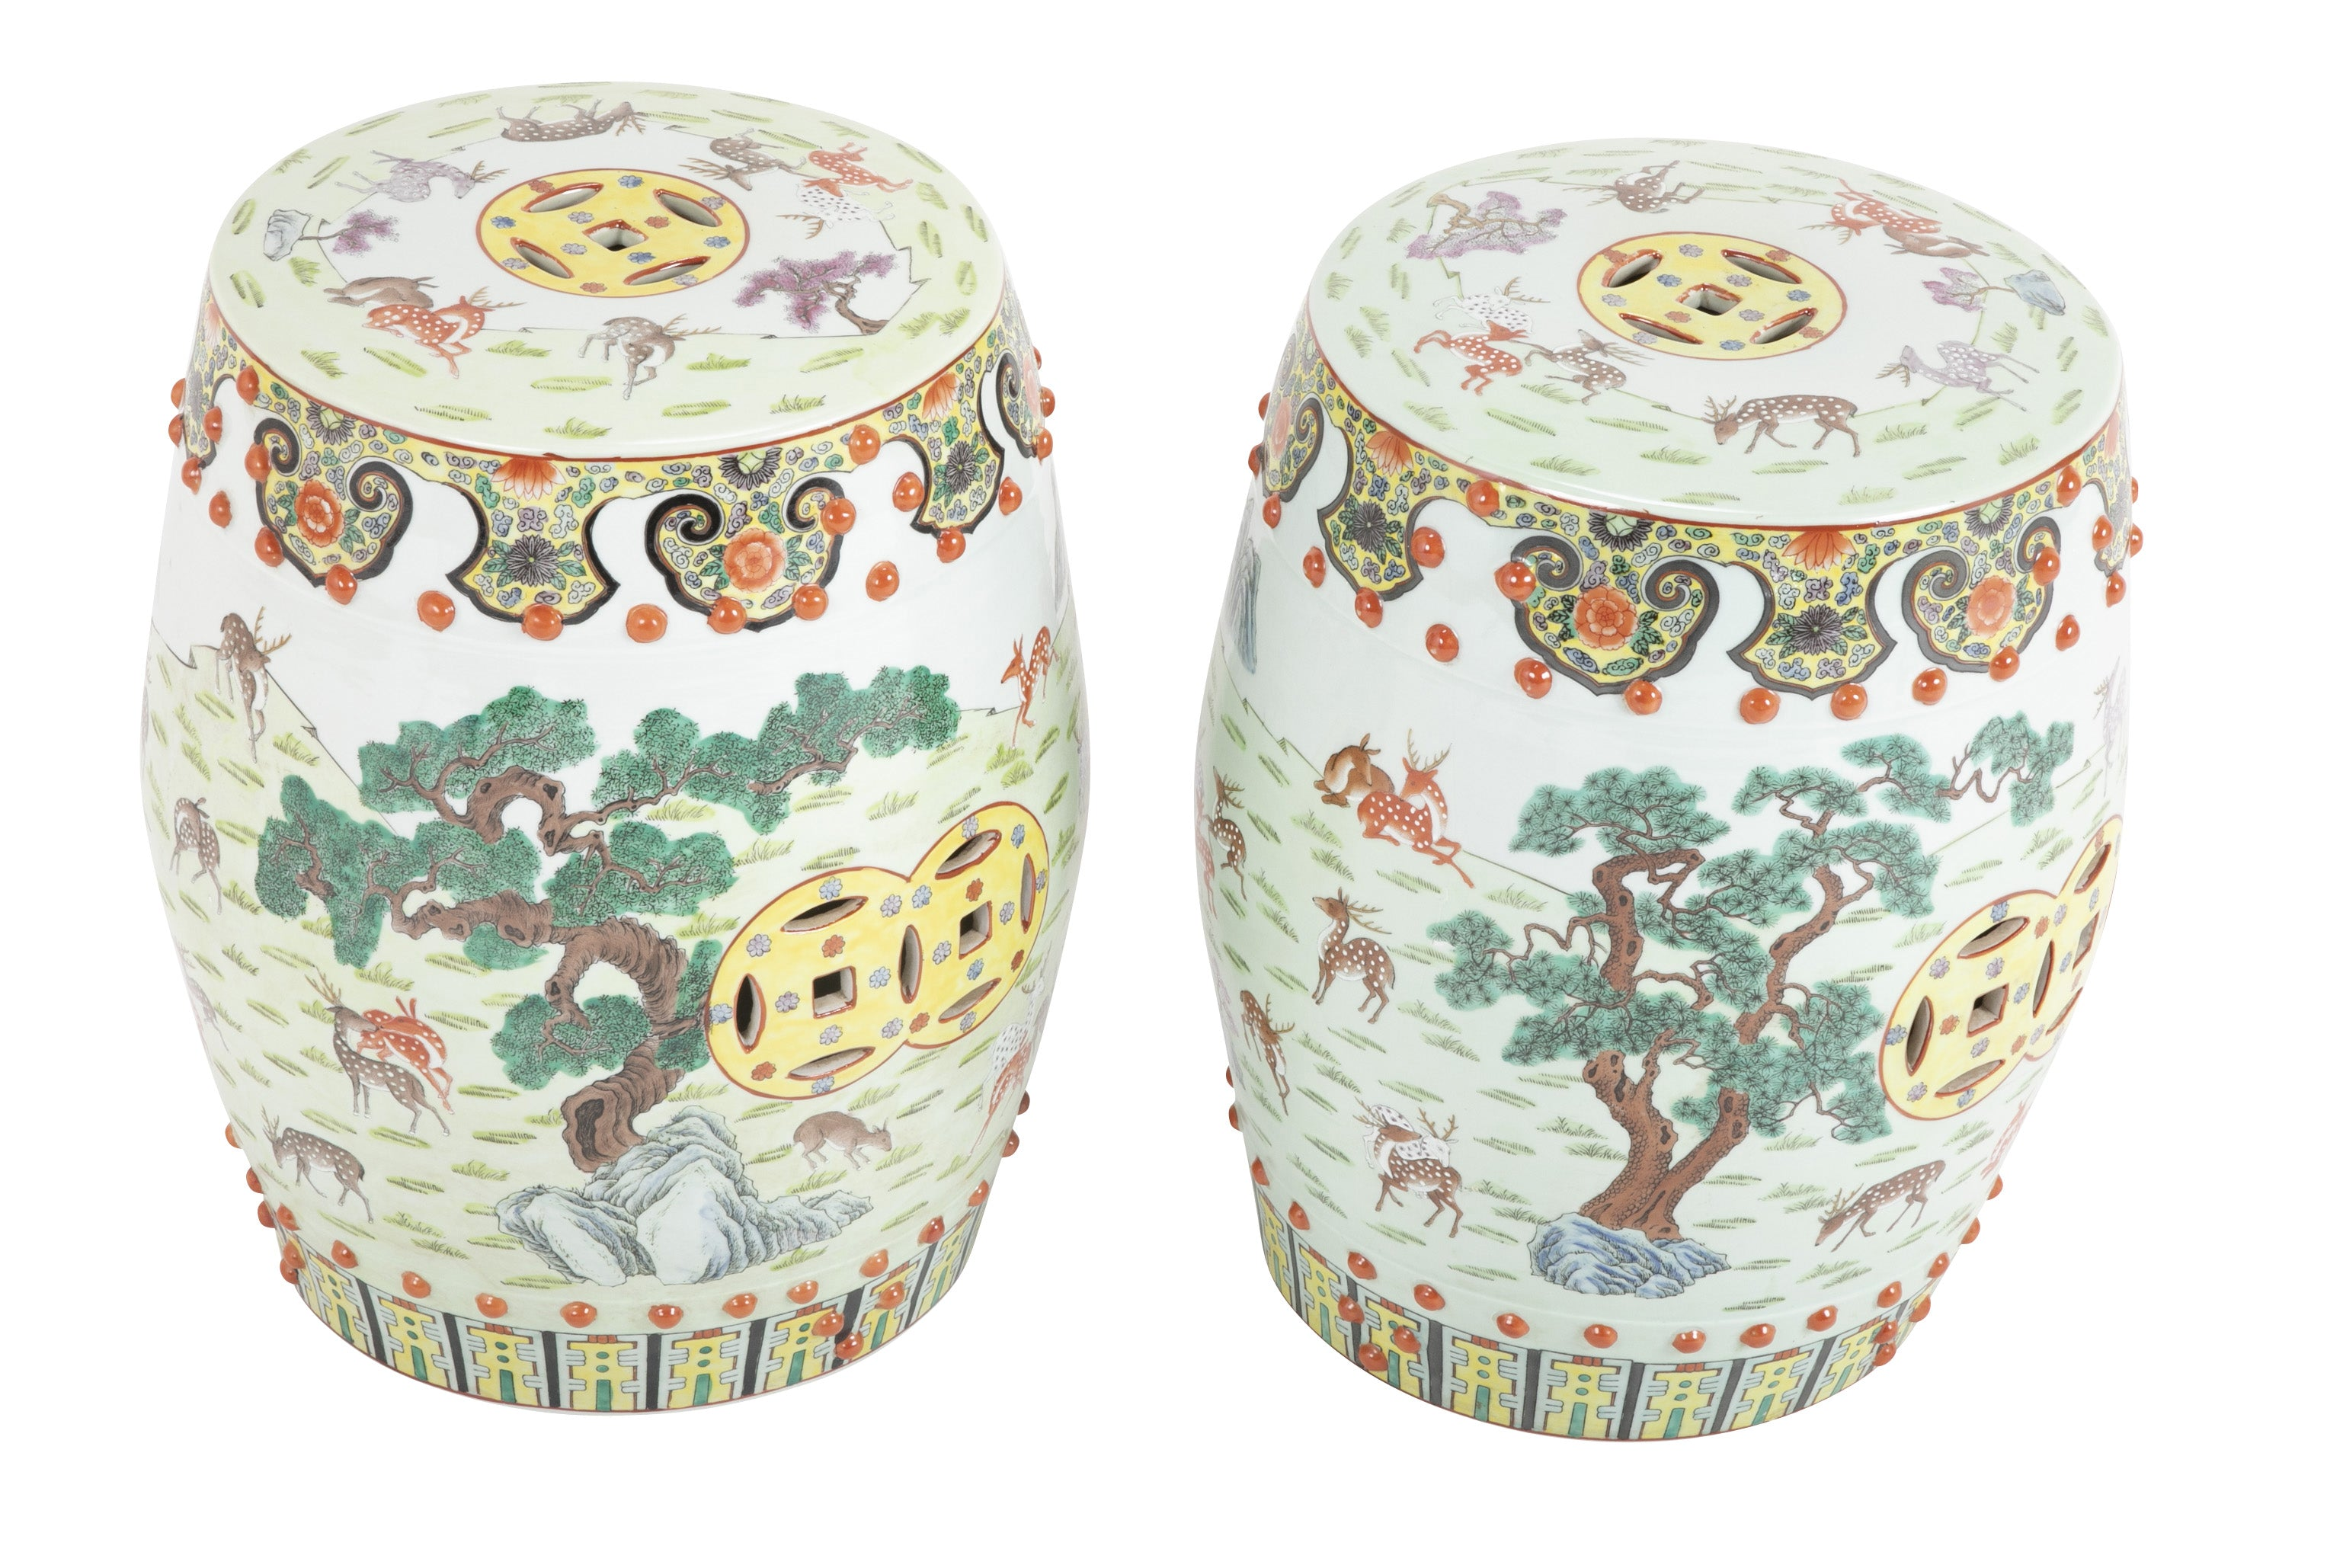 Pair of 8th Century Chinese Famille Rose Porcelain Garden Seats